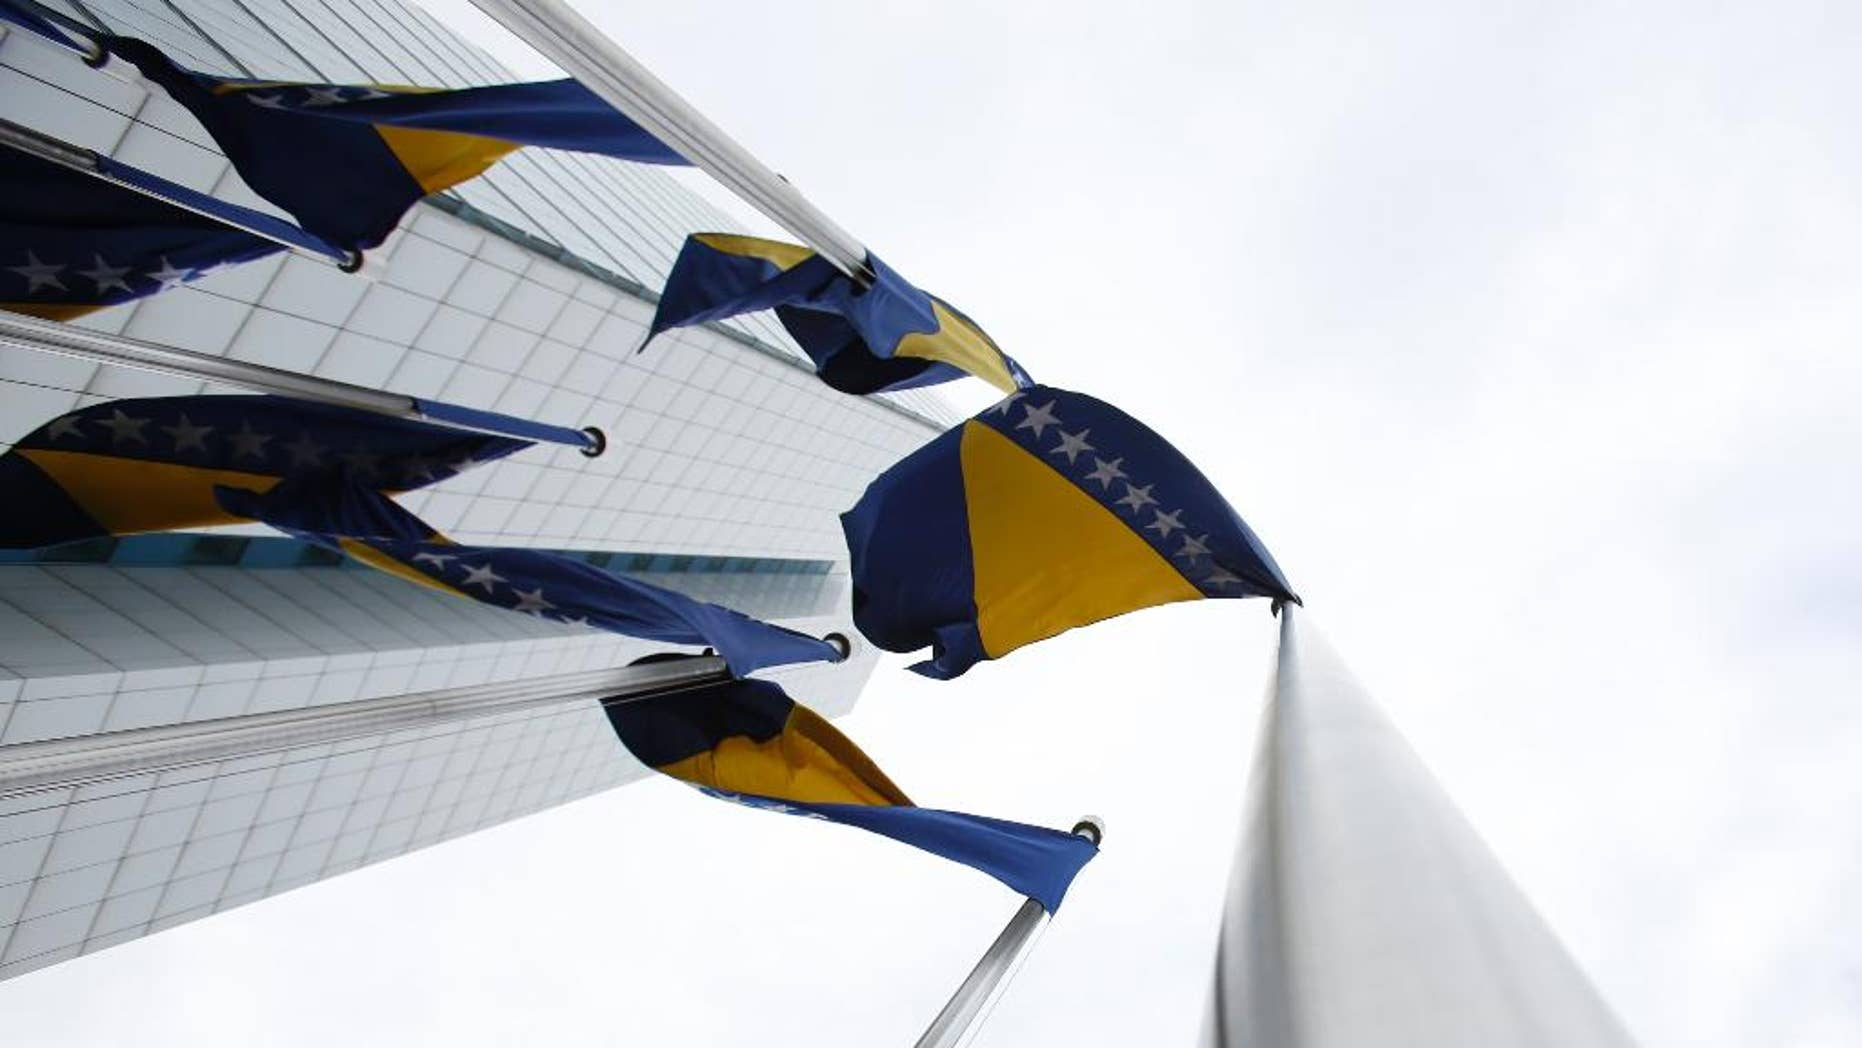 In this photo taken on Friday, Feb. 12, 2016 Bosnian flags flutter in the wind near government building in Sarajevo, Bosnia. The European Union said Tuesday, Sept. 20, 2016, it will examine whether Bosnia has what it takes to become a member as the bloc continues with plans to expand just months after Britain decided to leave. (AP Photo/Amel Emric)